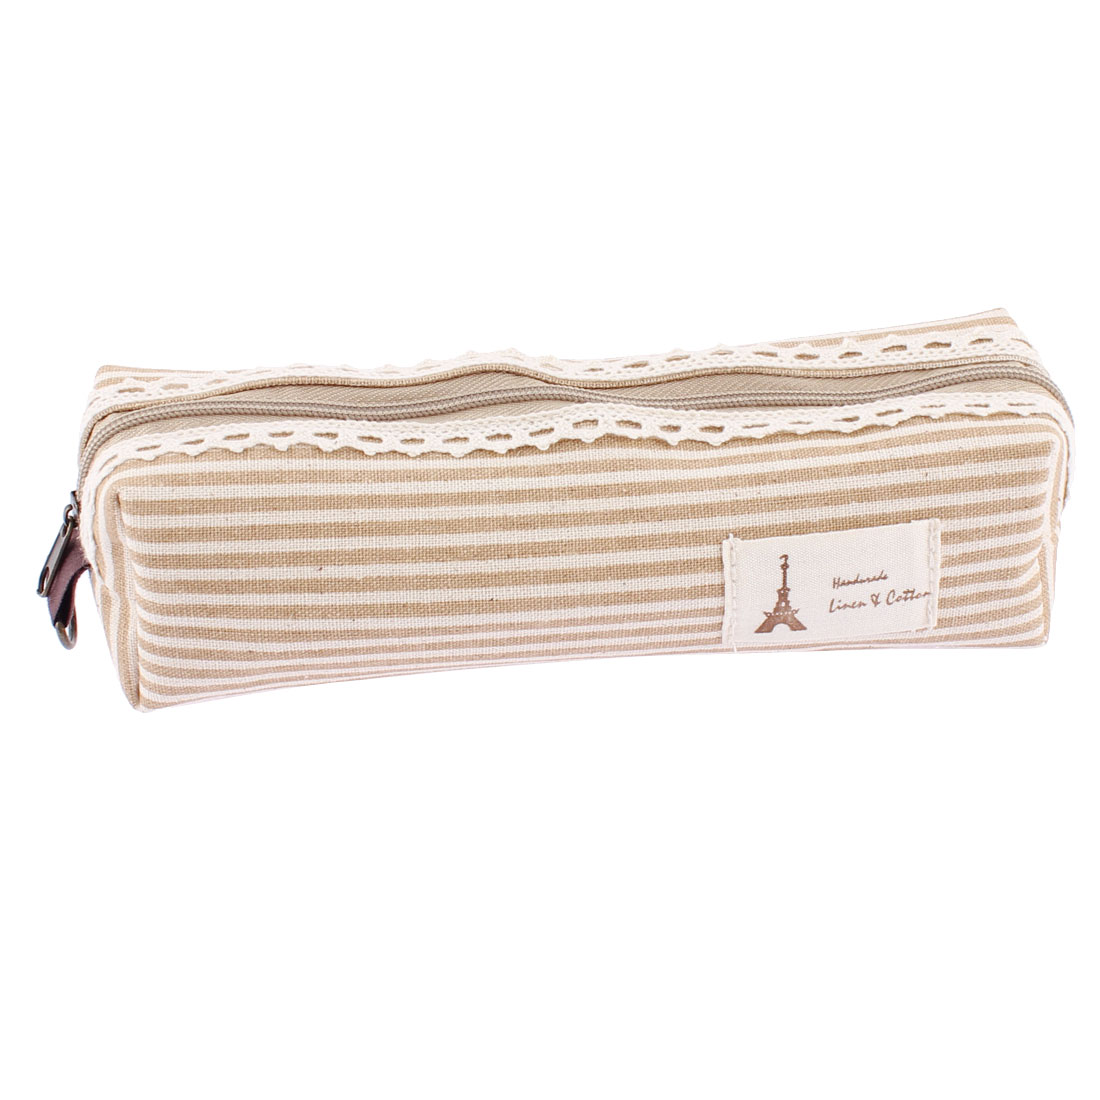 Students Canva Stripe Pattern Zippered Stationery Pen Pencil Bag Holder Camel Color